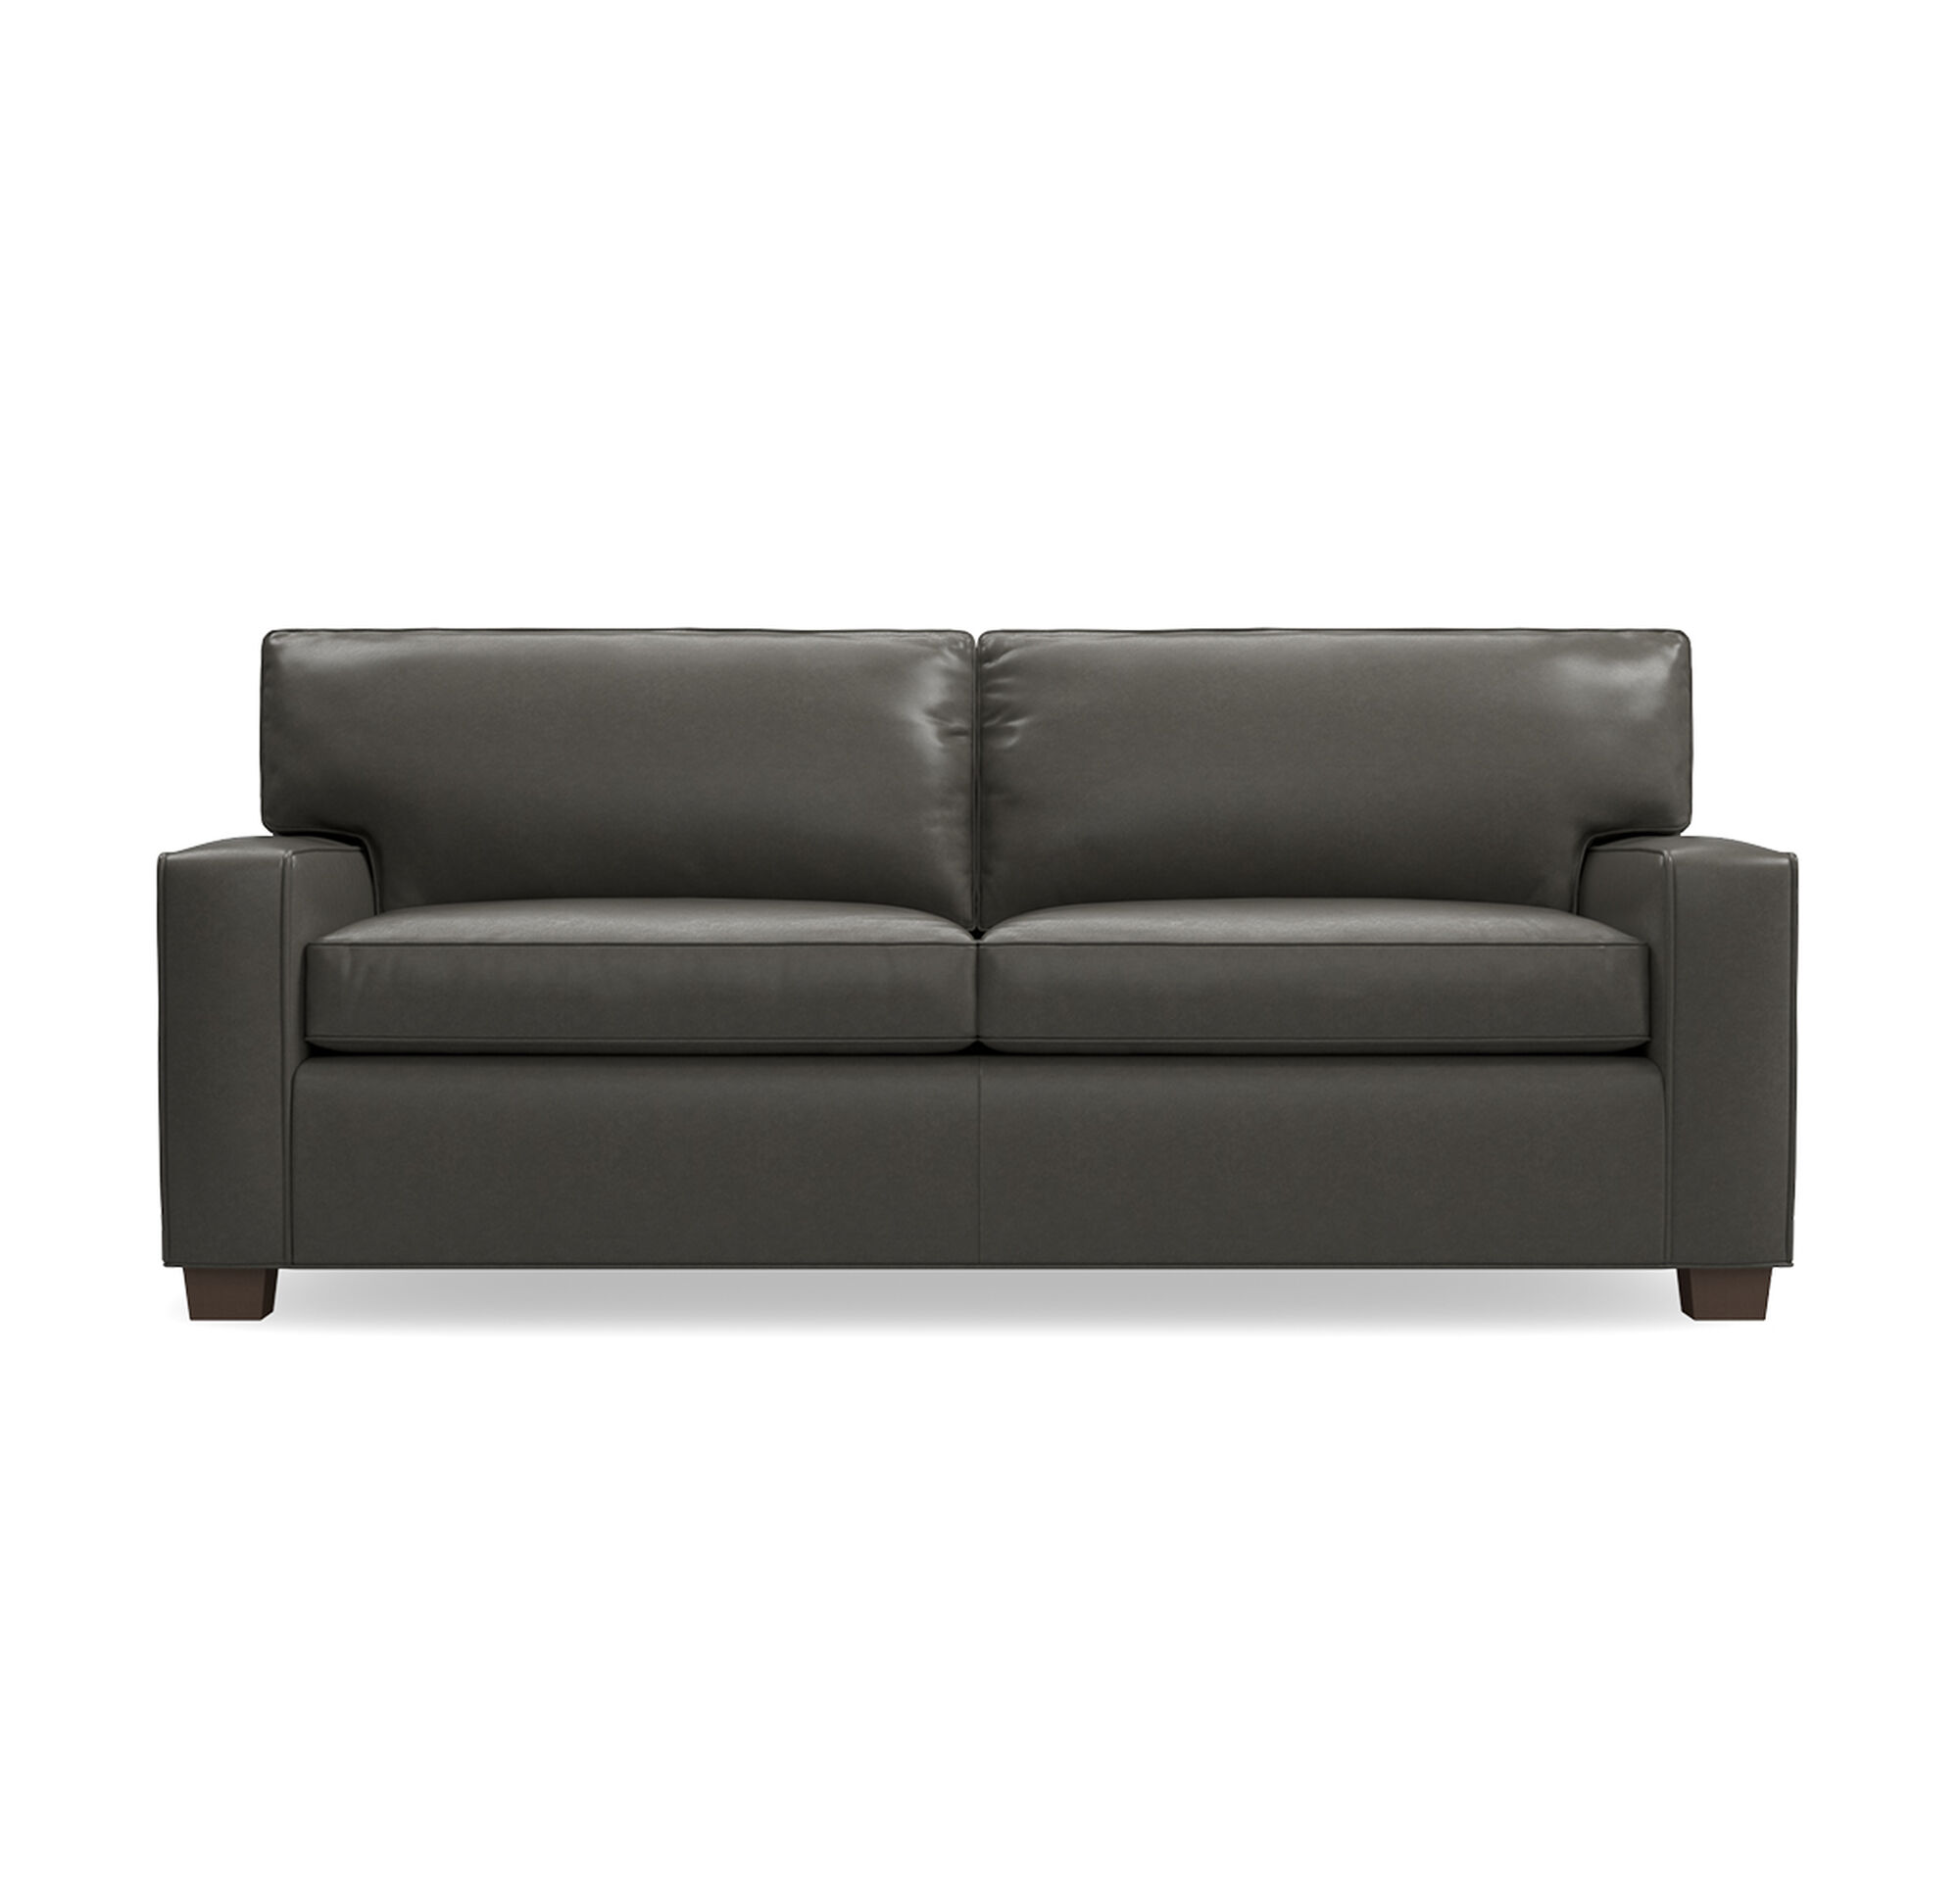 leather sleeper sofa queen ALEX LEATHER LUXE QUEEN SLEEPER SOFA leather sleeper sofa queen